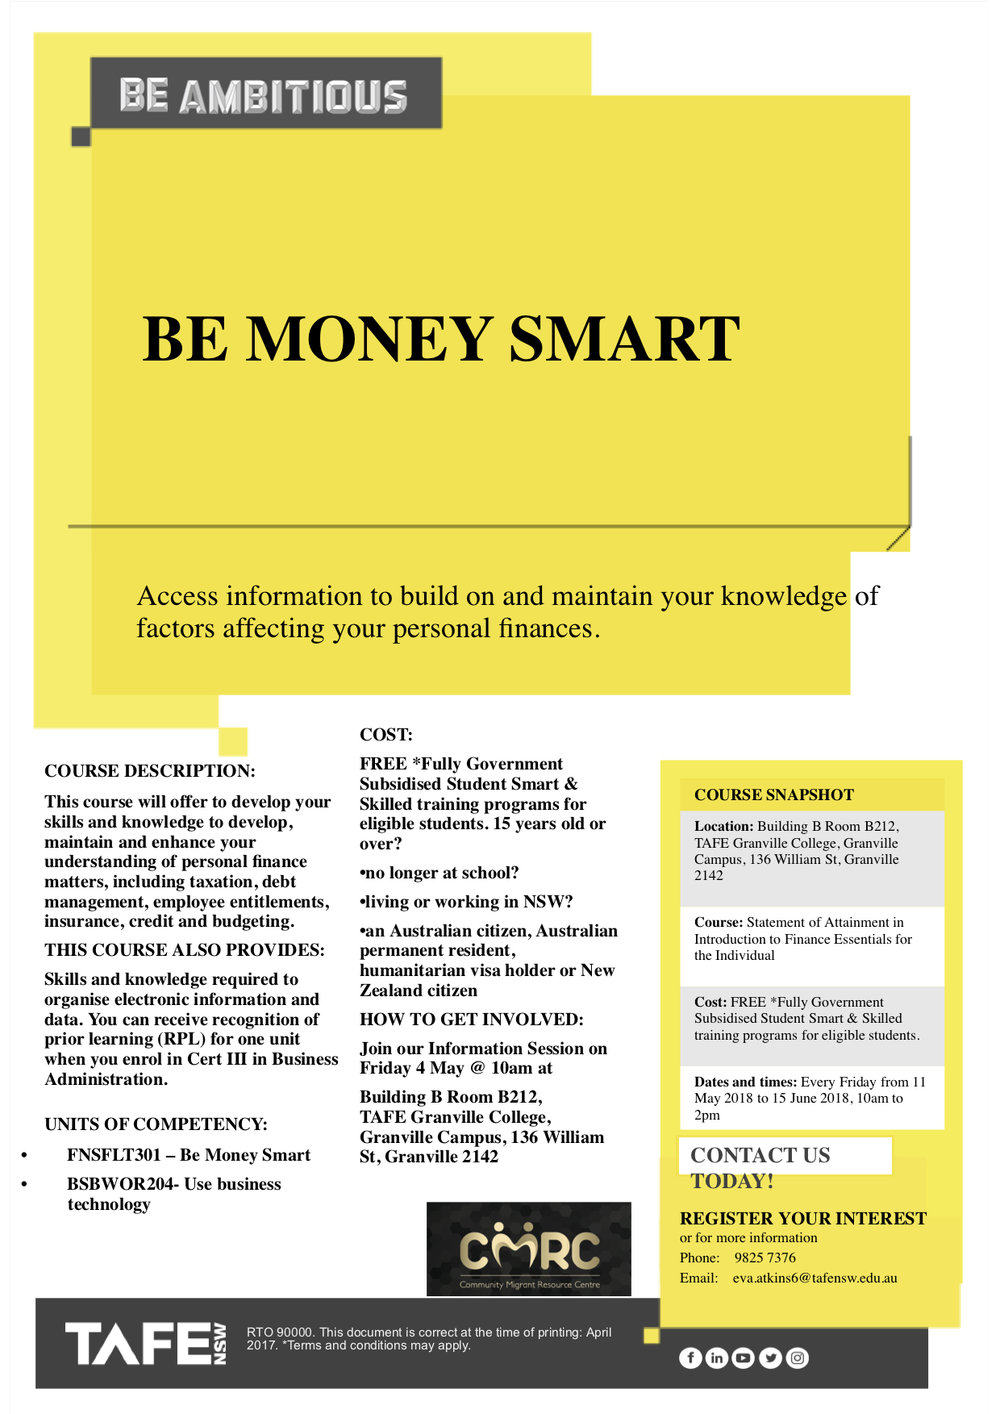 Flyer SoA in Introduction to Finance Essentials for the Individual.jpg